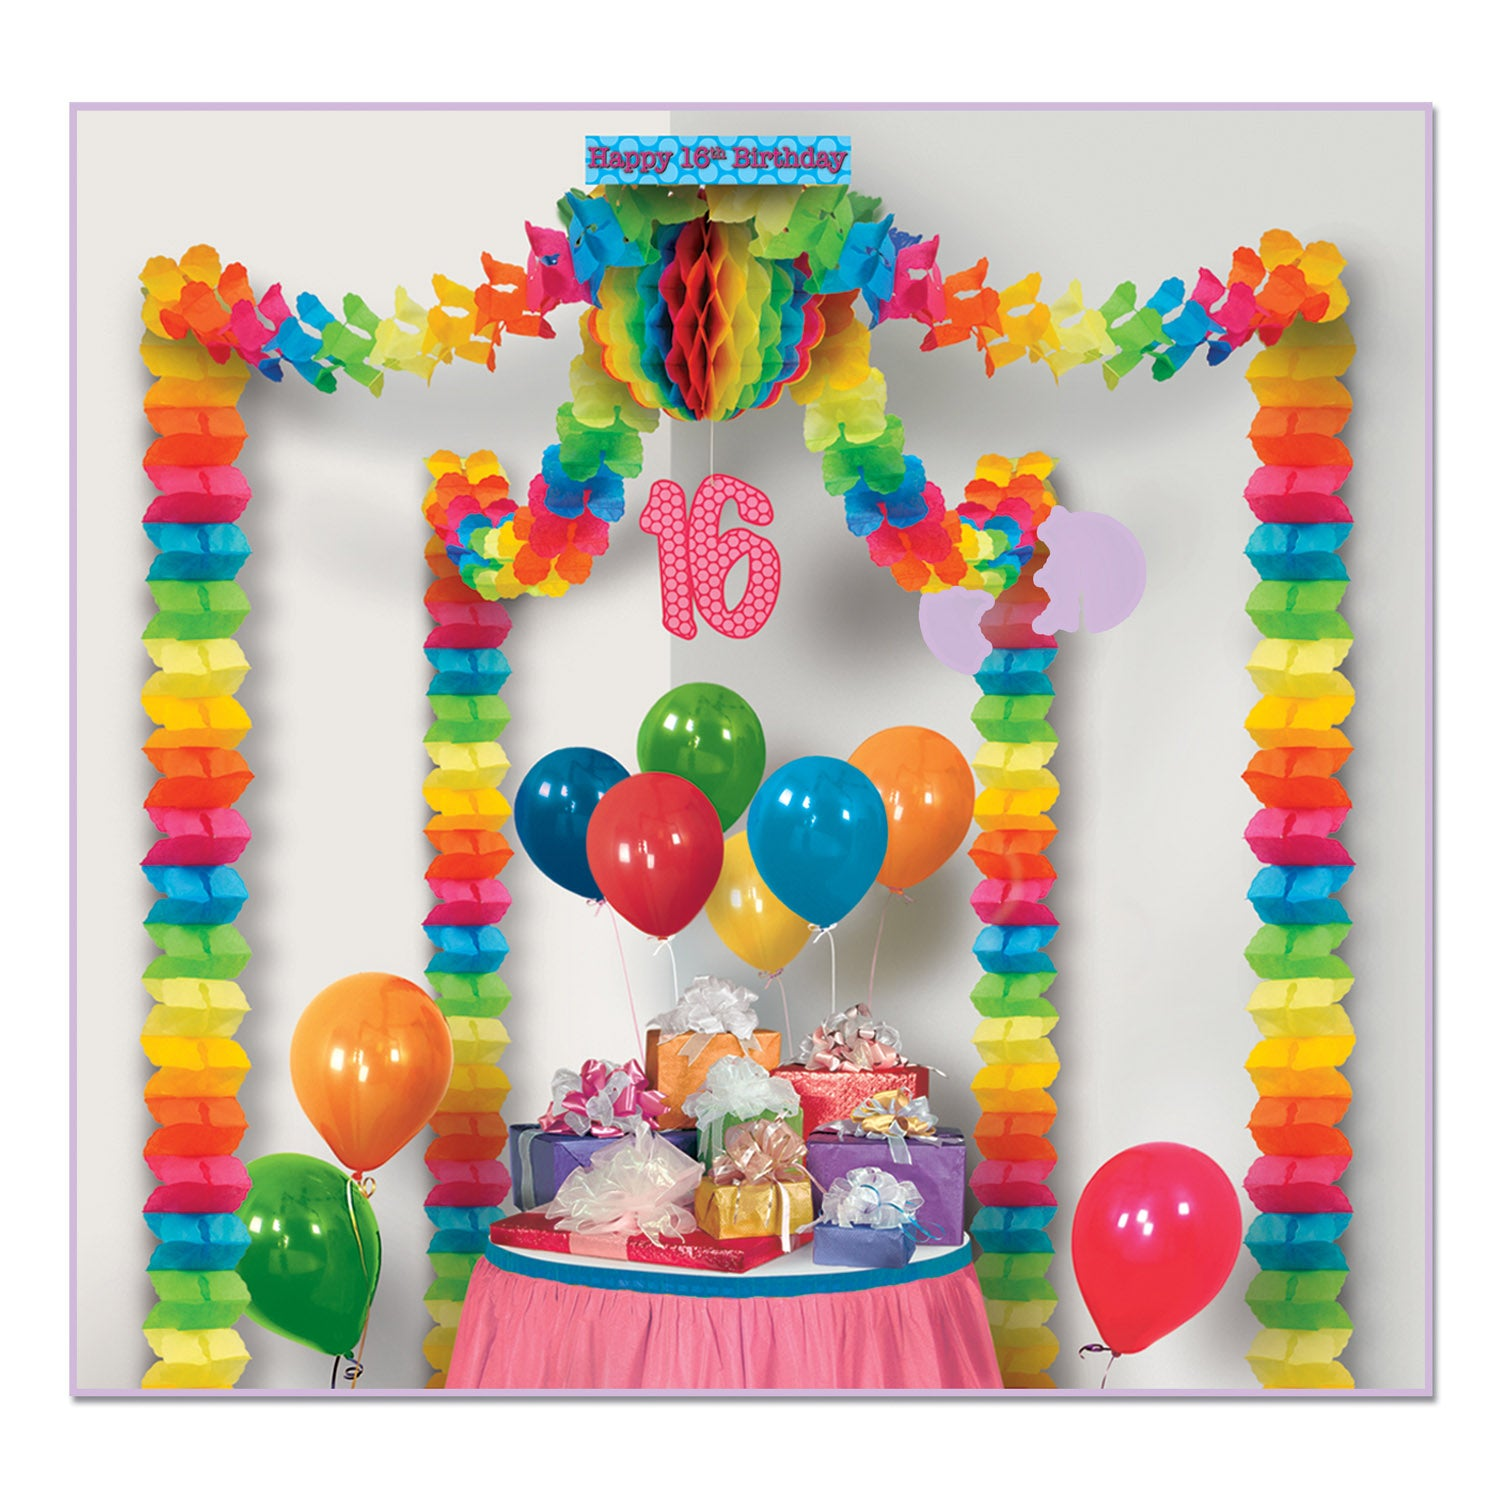 16th Birthday Party Canopy by Beistle - Sweet 16 Birthday Decorations